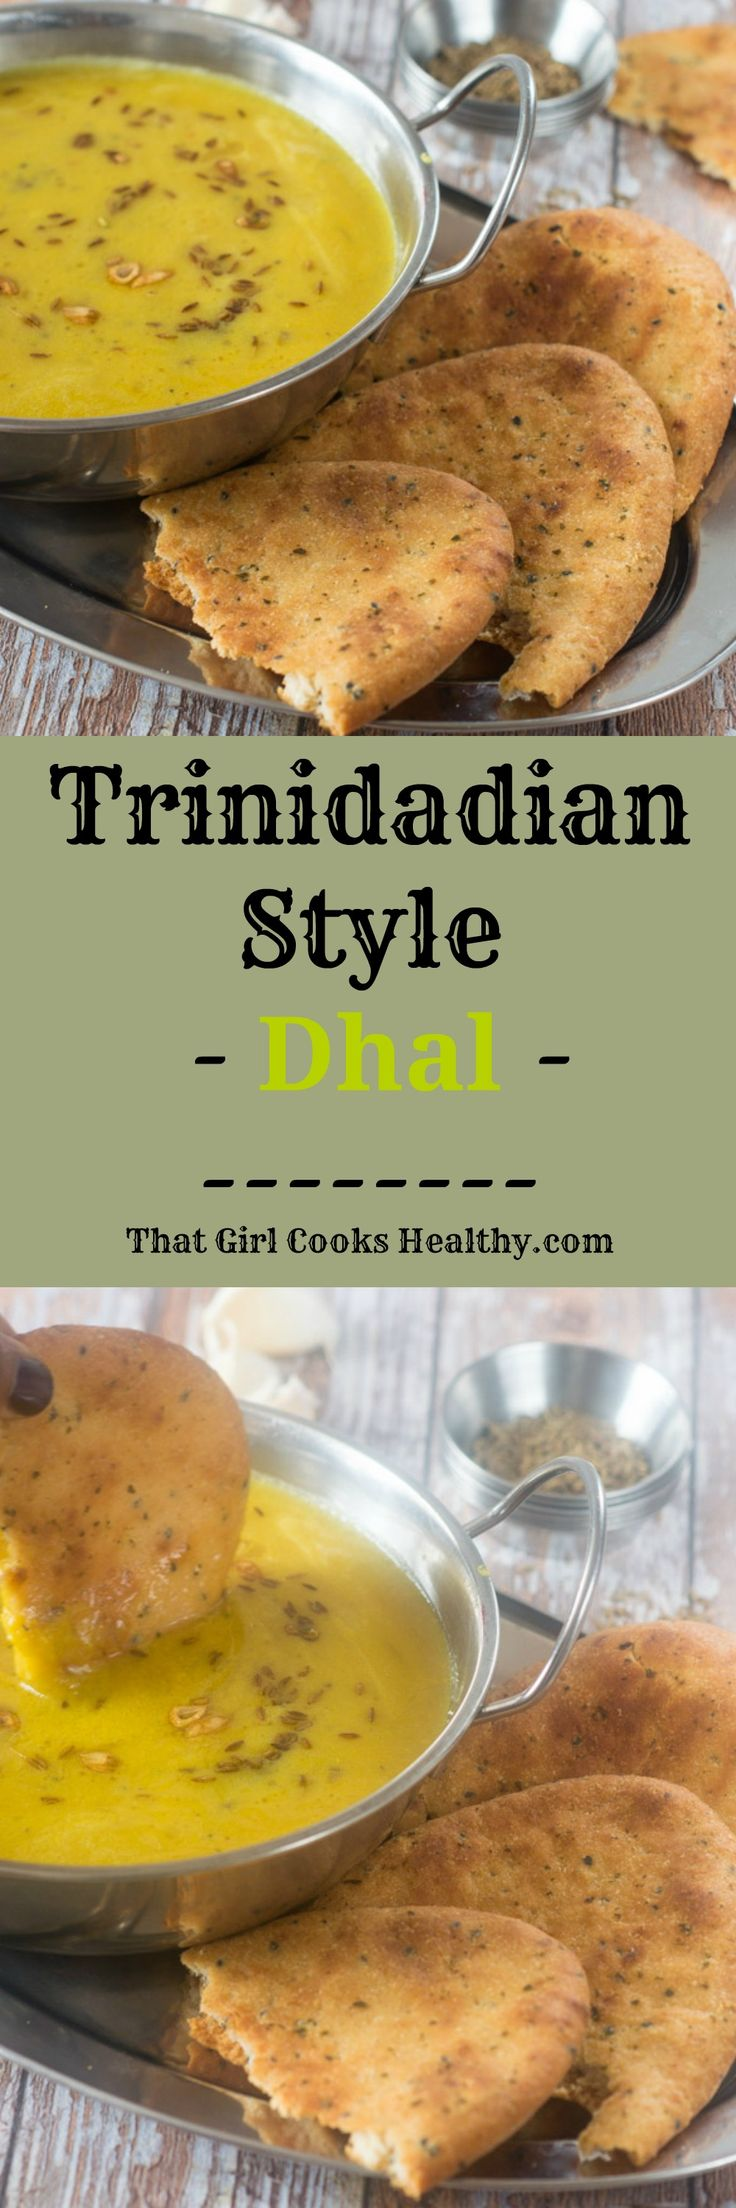 Learn how to make this simple Trinidadian dhal recipe If you are an avid reader of my website then you will probably already know that I am a huge fan of legumes. I usually eat some type of legume on a daily basis, sometimes in the form of a light soup and other times consume them mashed